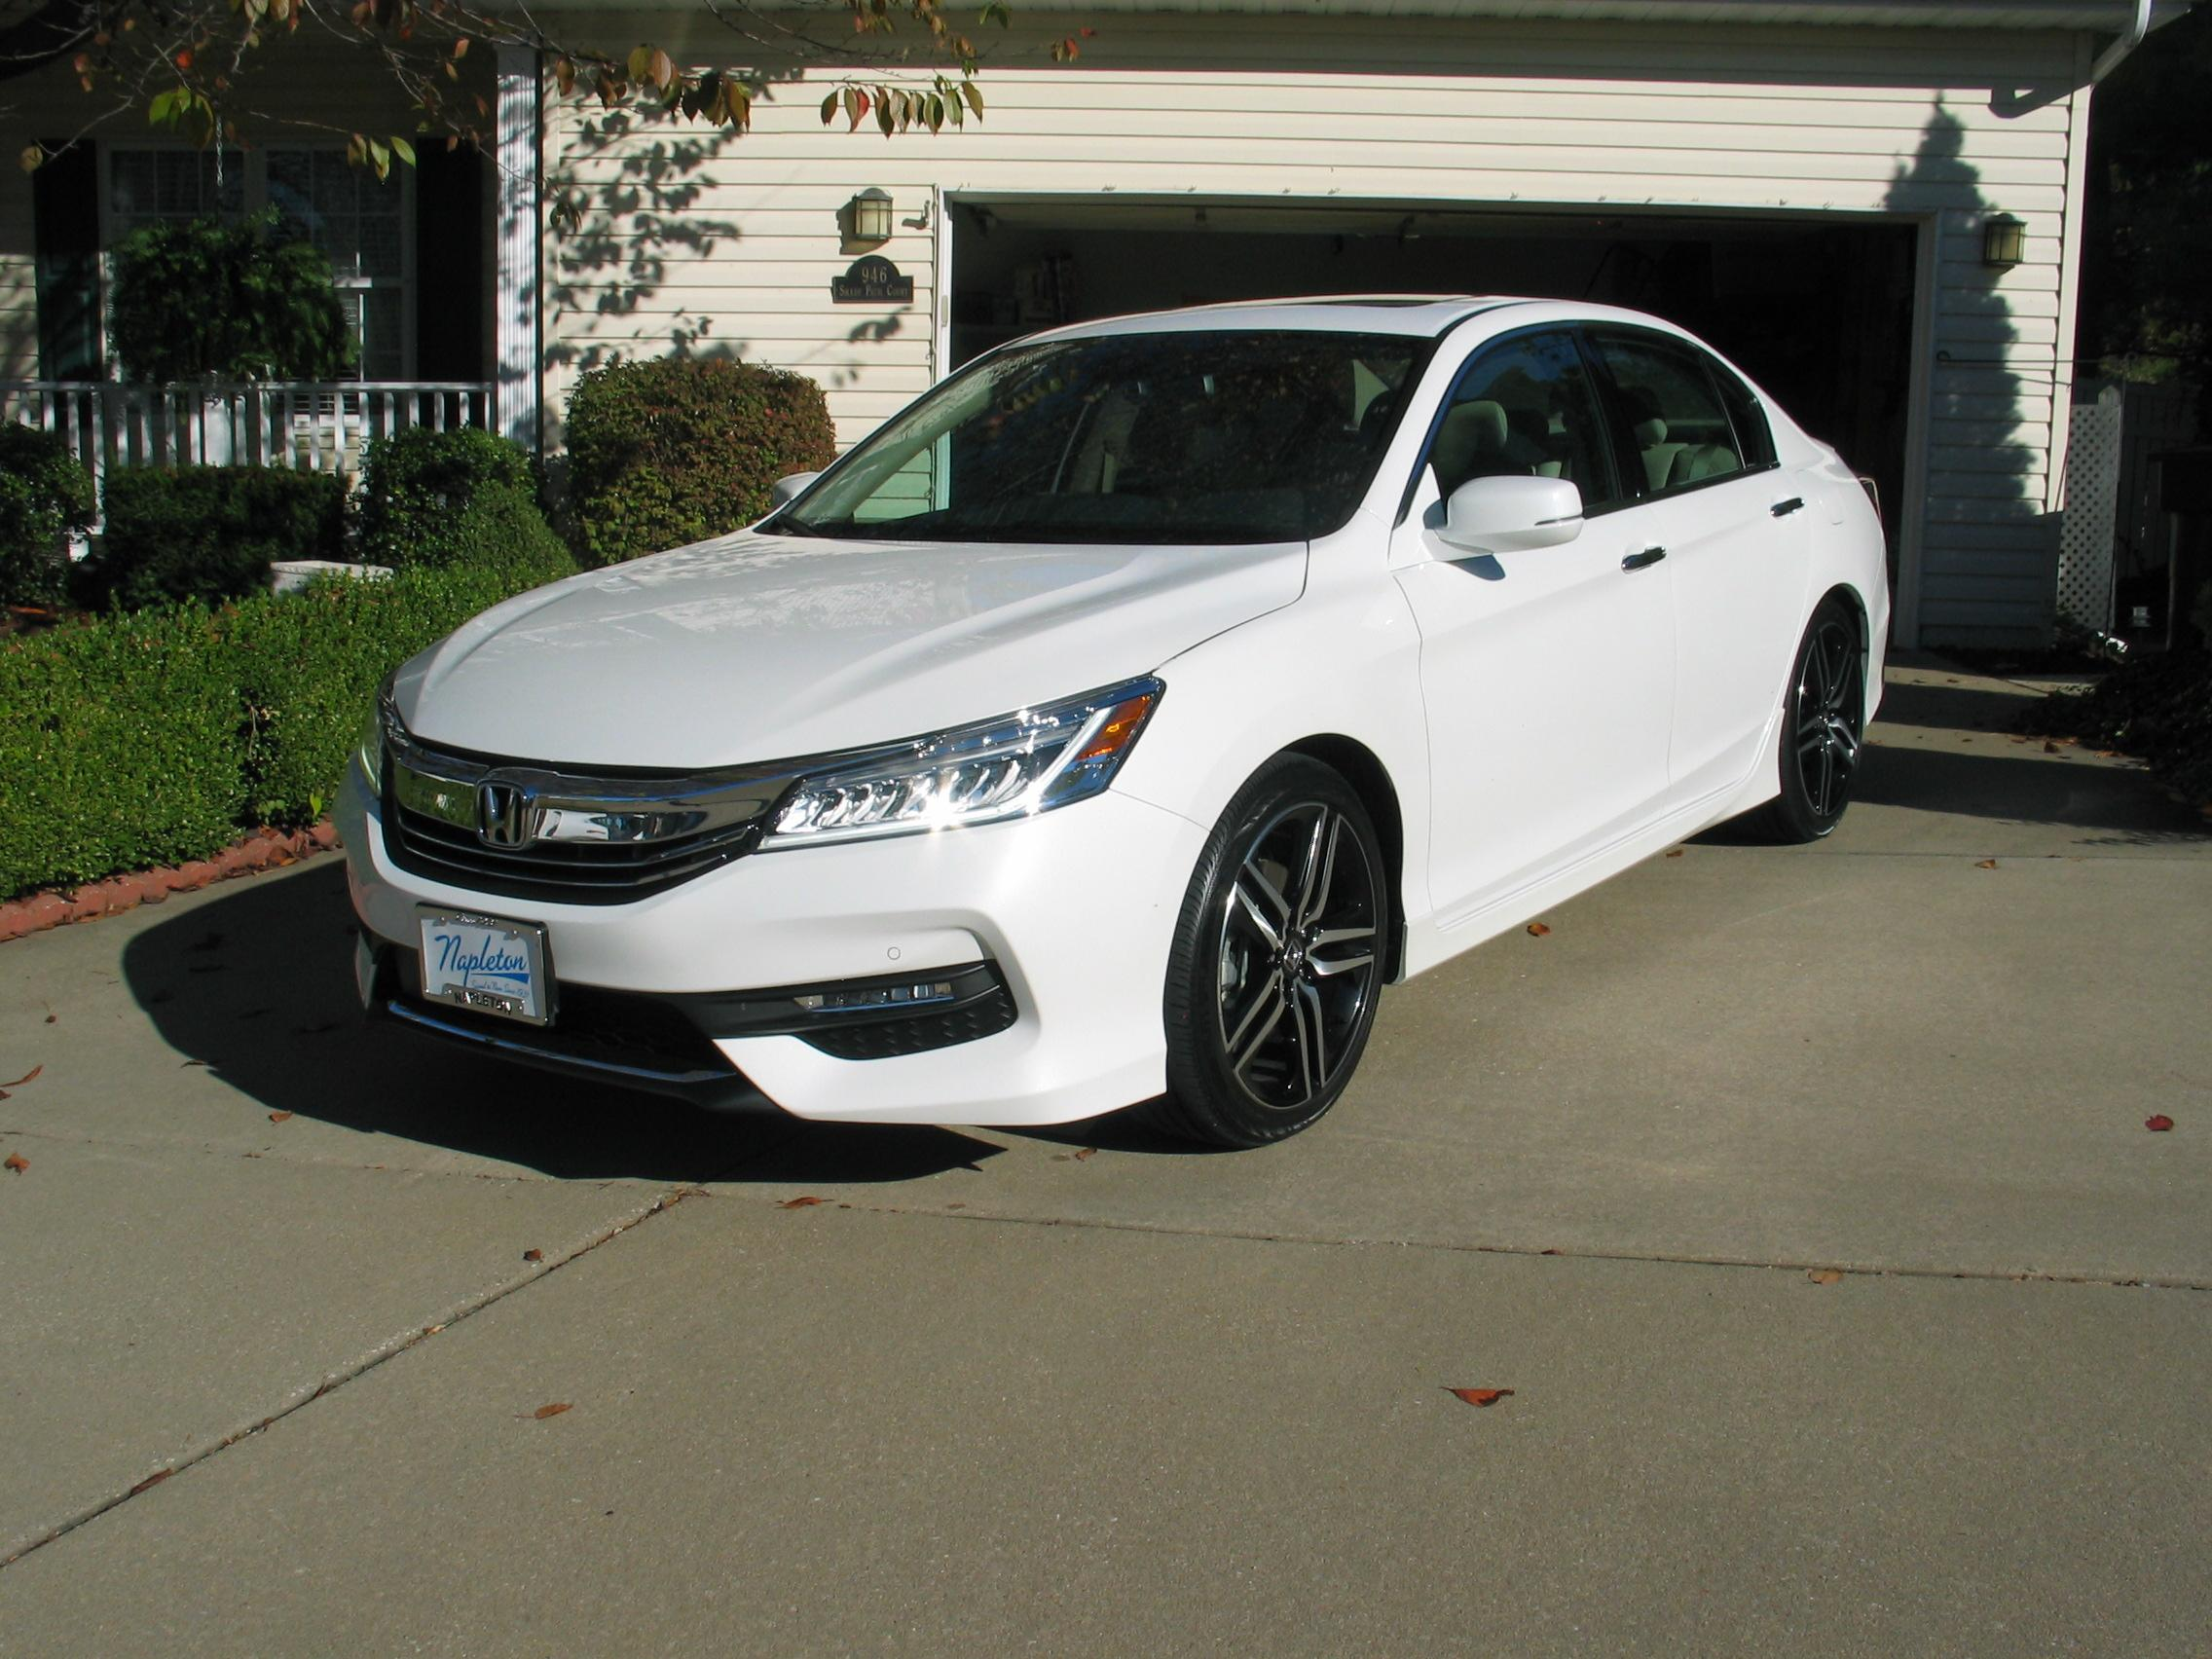 2016 Honda Accord Prices Paid And Buying Experience